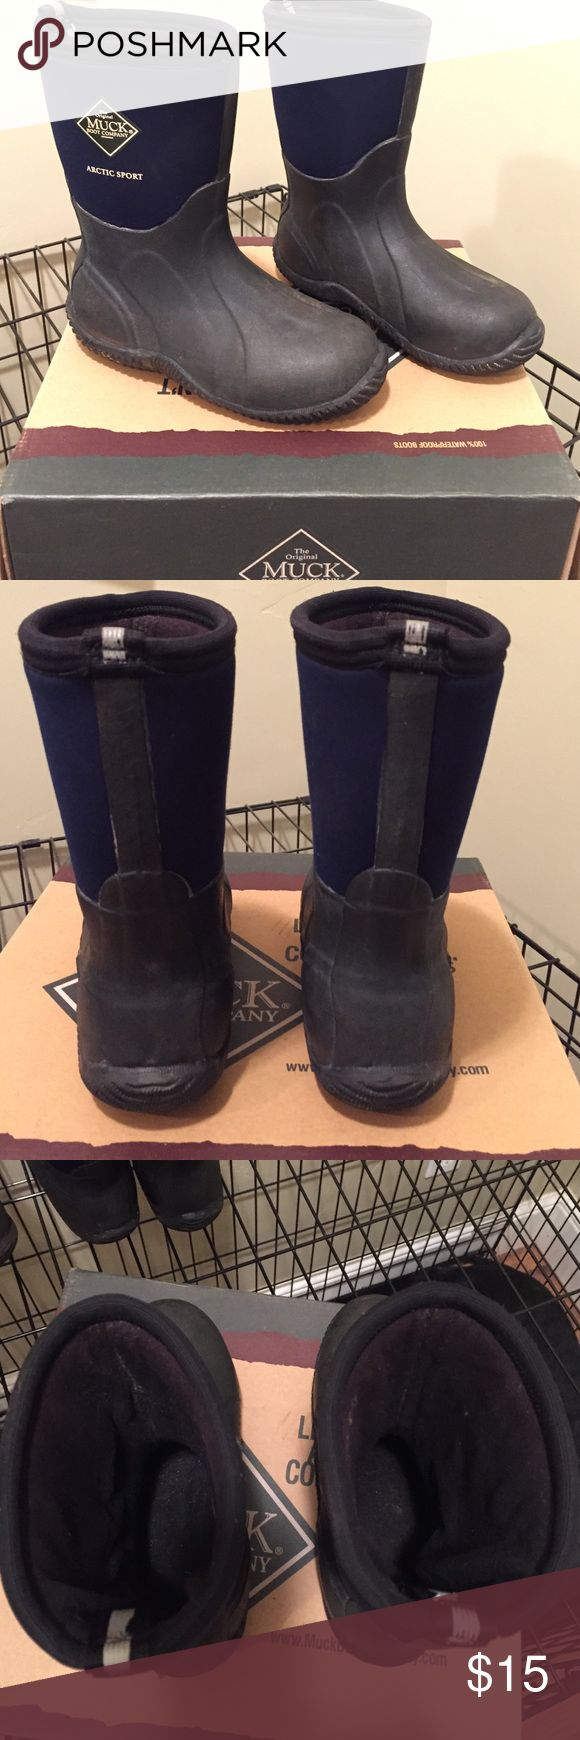 Youth Muck Boots The Original Muck Boot - Arctic Sport - Navy Blue Kids Size 2. Worn one season and in great condition.  Keep feet dry and warm. Awesome boots! Shoes Boots